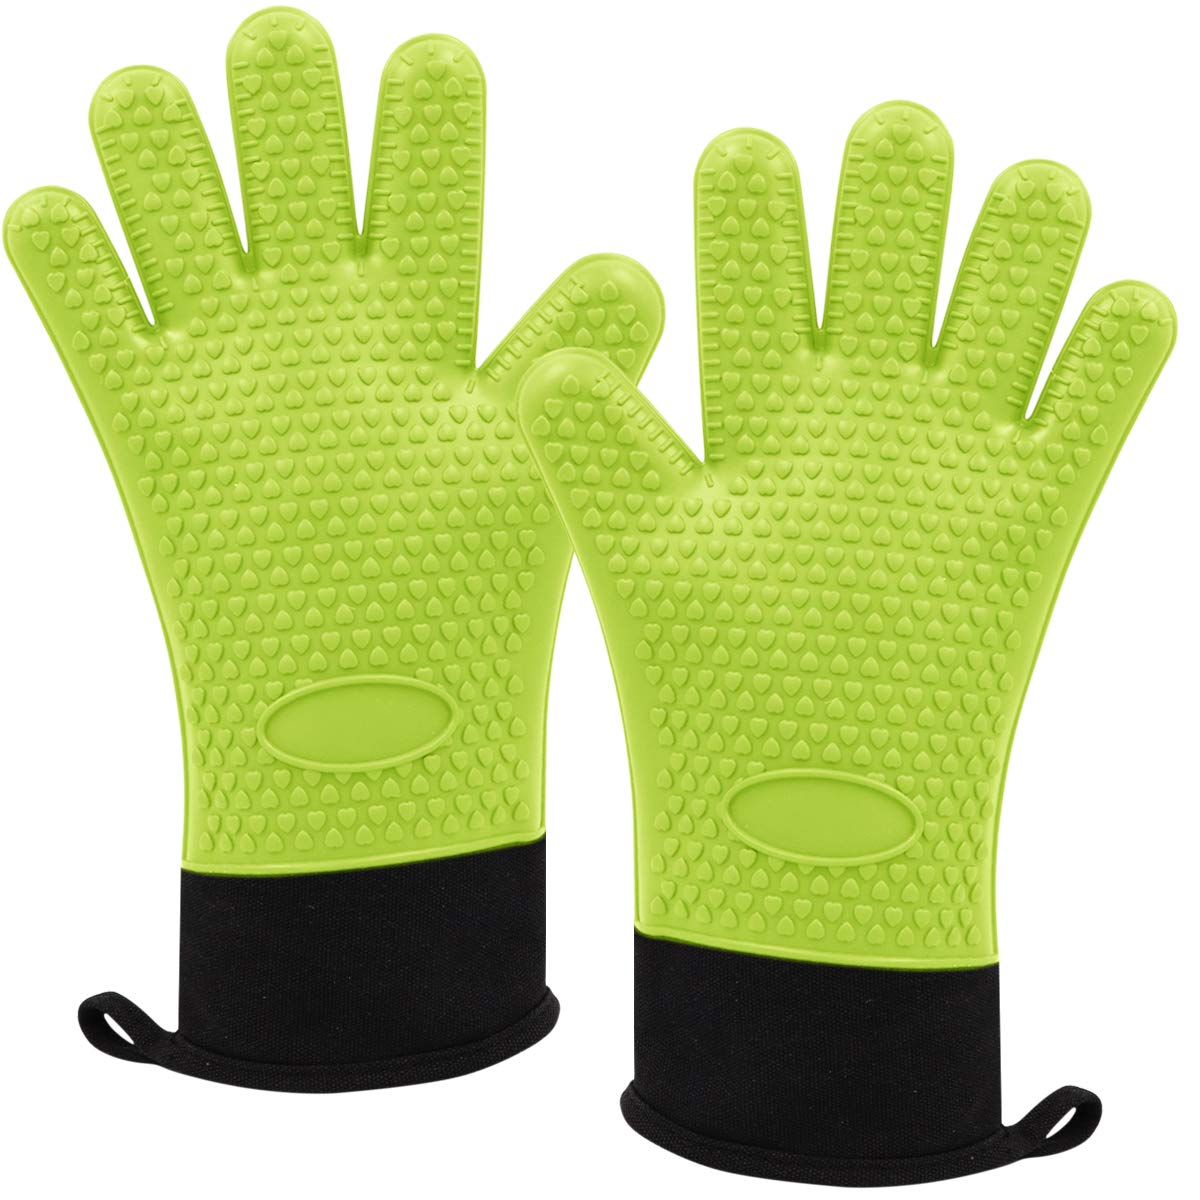 Oven Gloves, Heat Resistant Grilling mitts Kitchen Silicone mitts Long oven mitts Internal protective cotton layer, Non-Slip Baking Gloves, BBQ Cooking Gloves (Green)